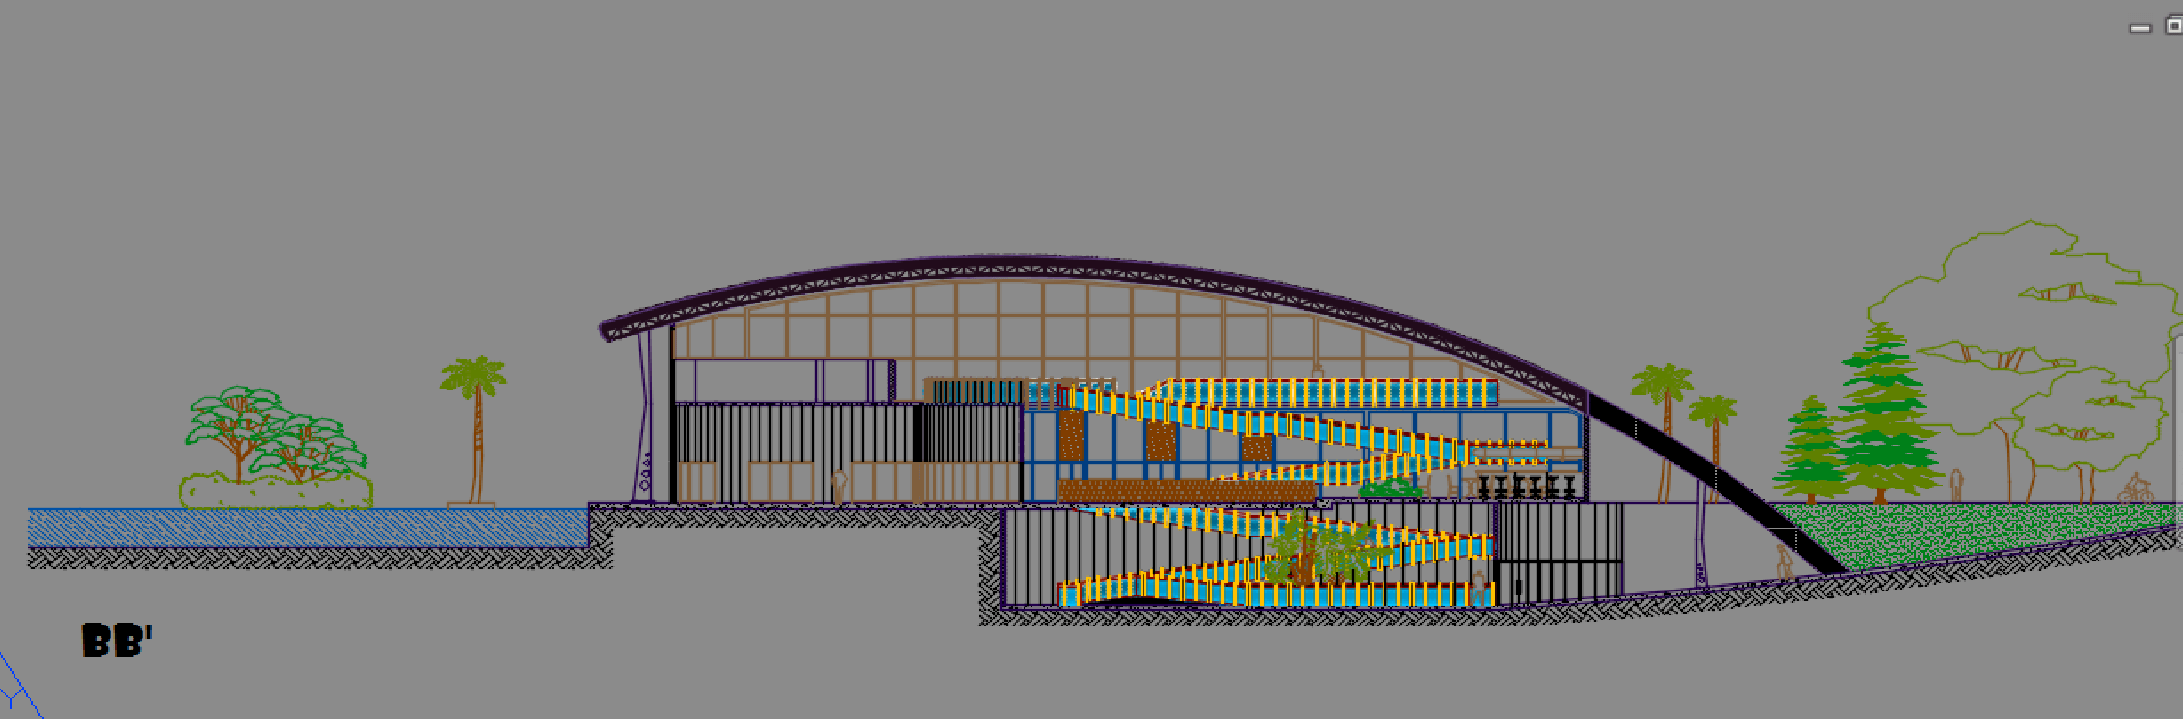 Convention Center With Curved Roofs 2D DWG Design